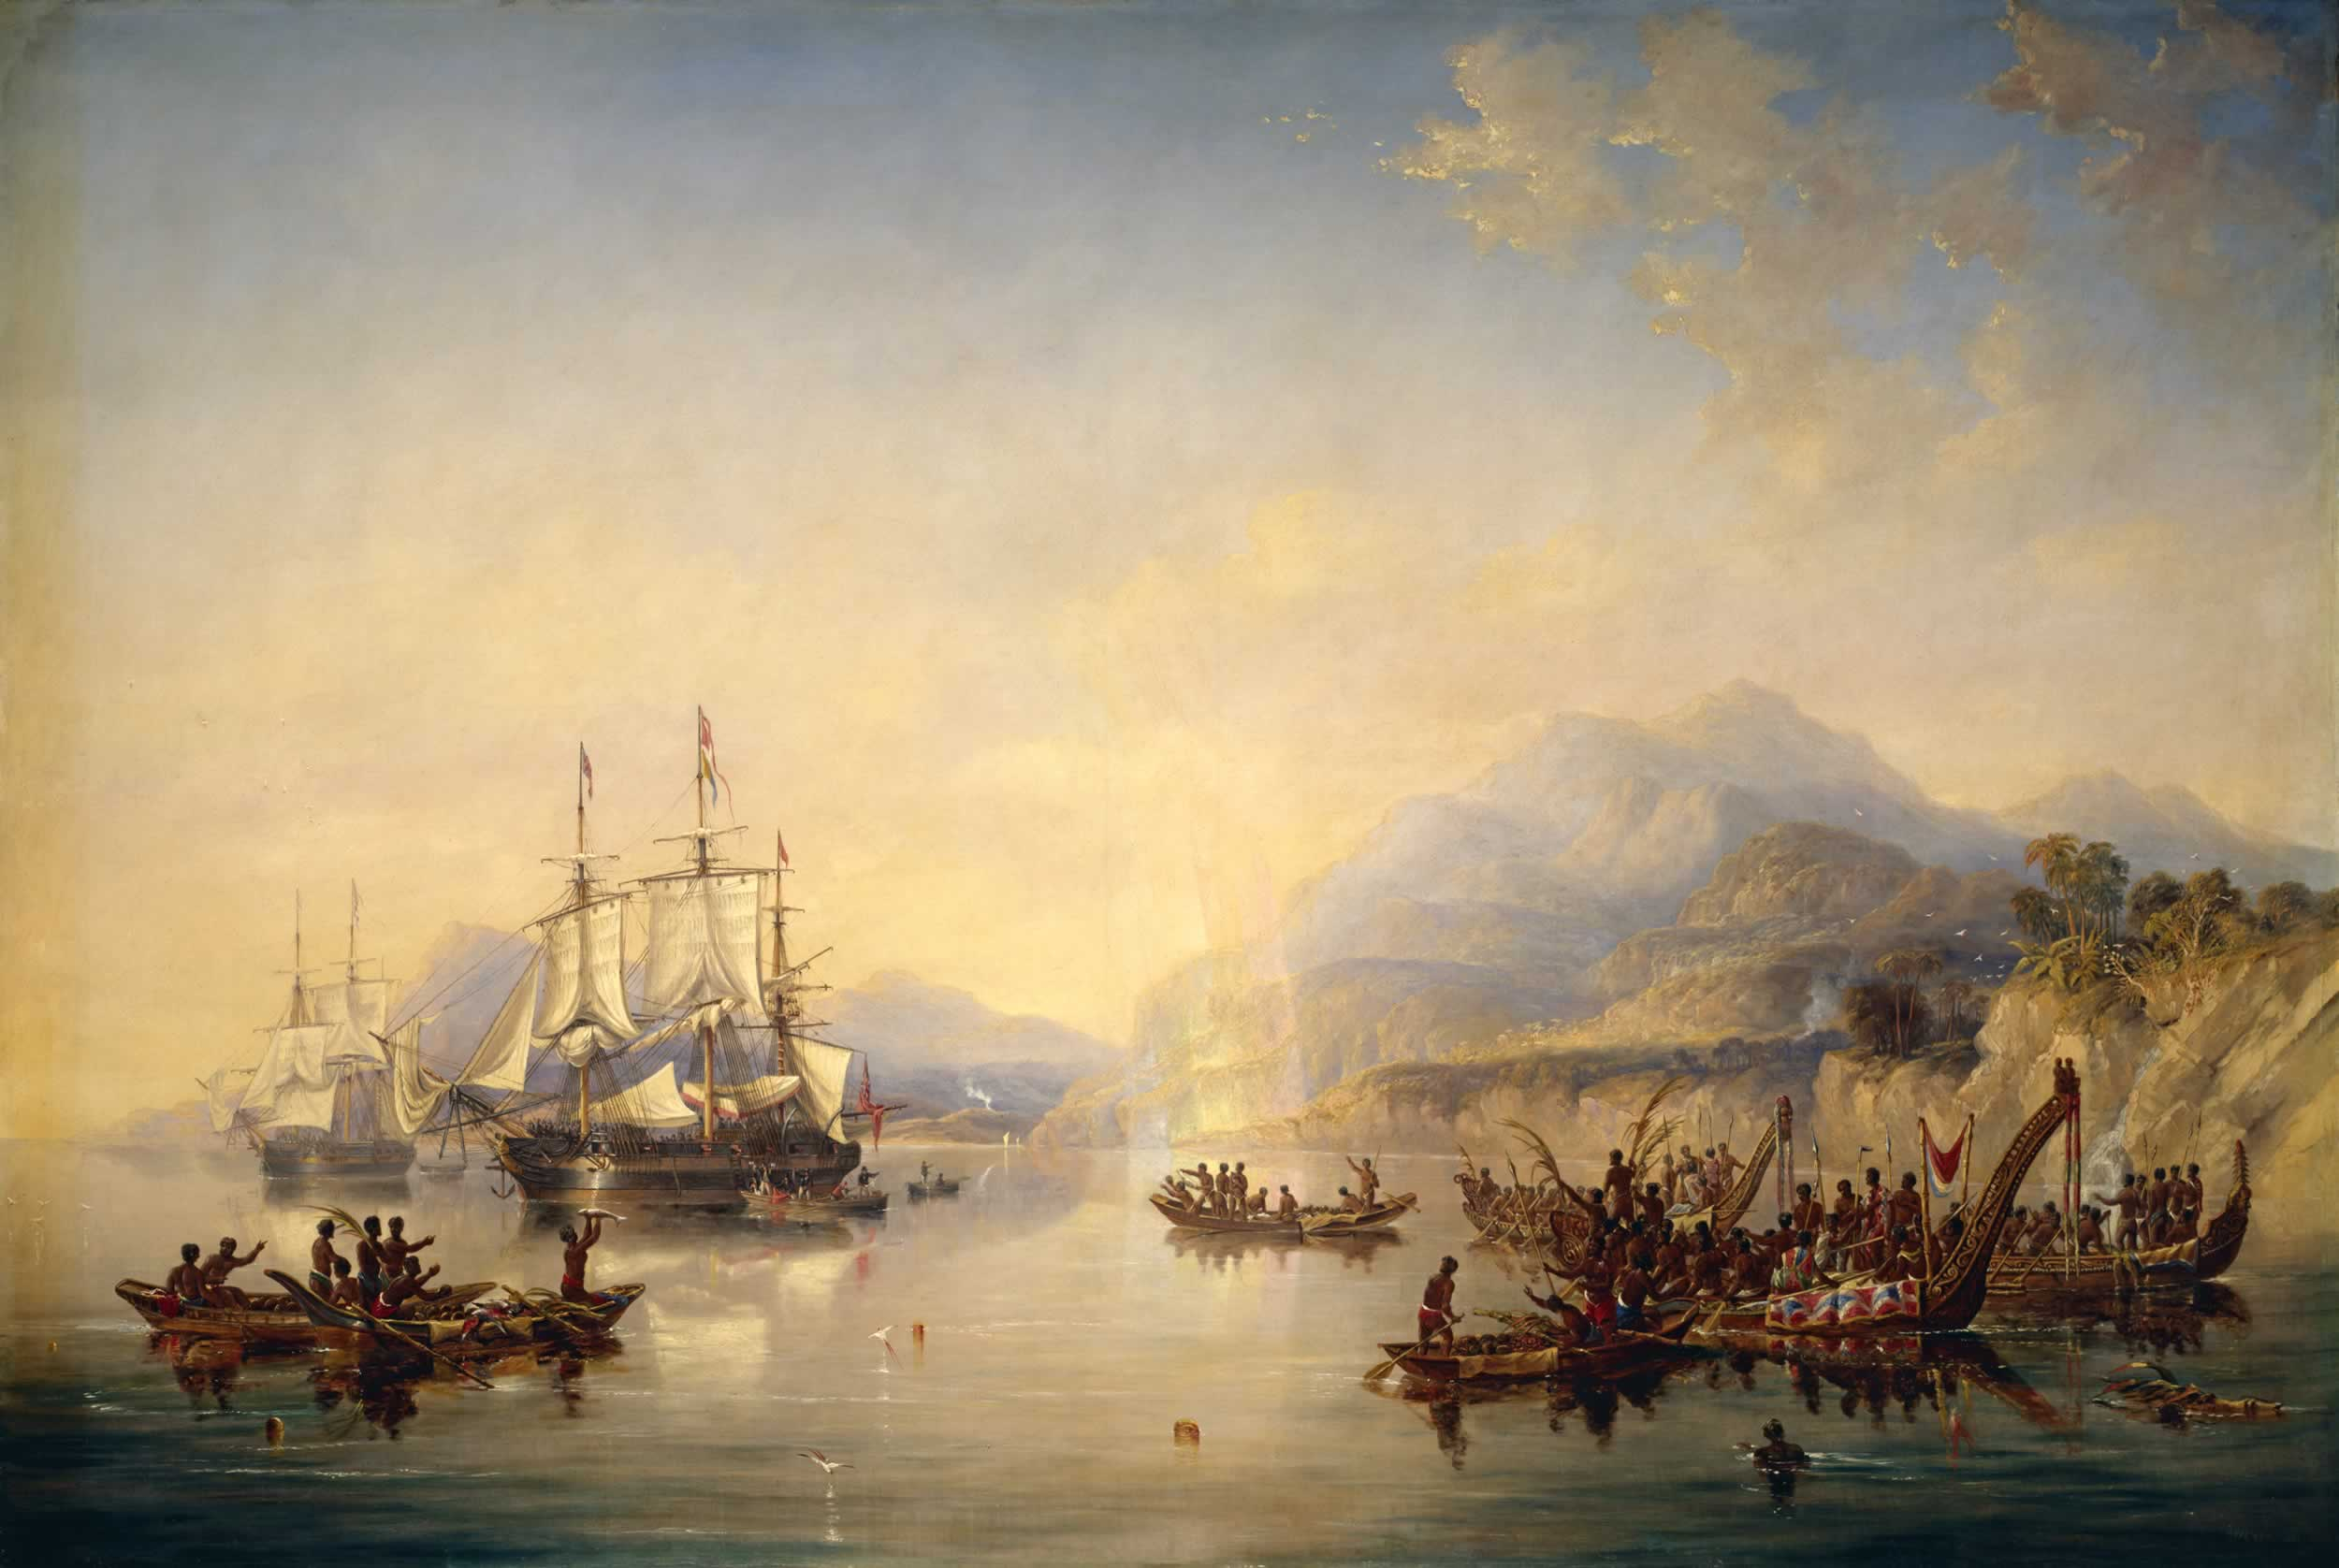 'Erebus' and the 'Terror' in New Zealand, August 1841 by John Wilson Carmichael